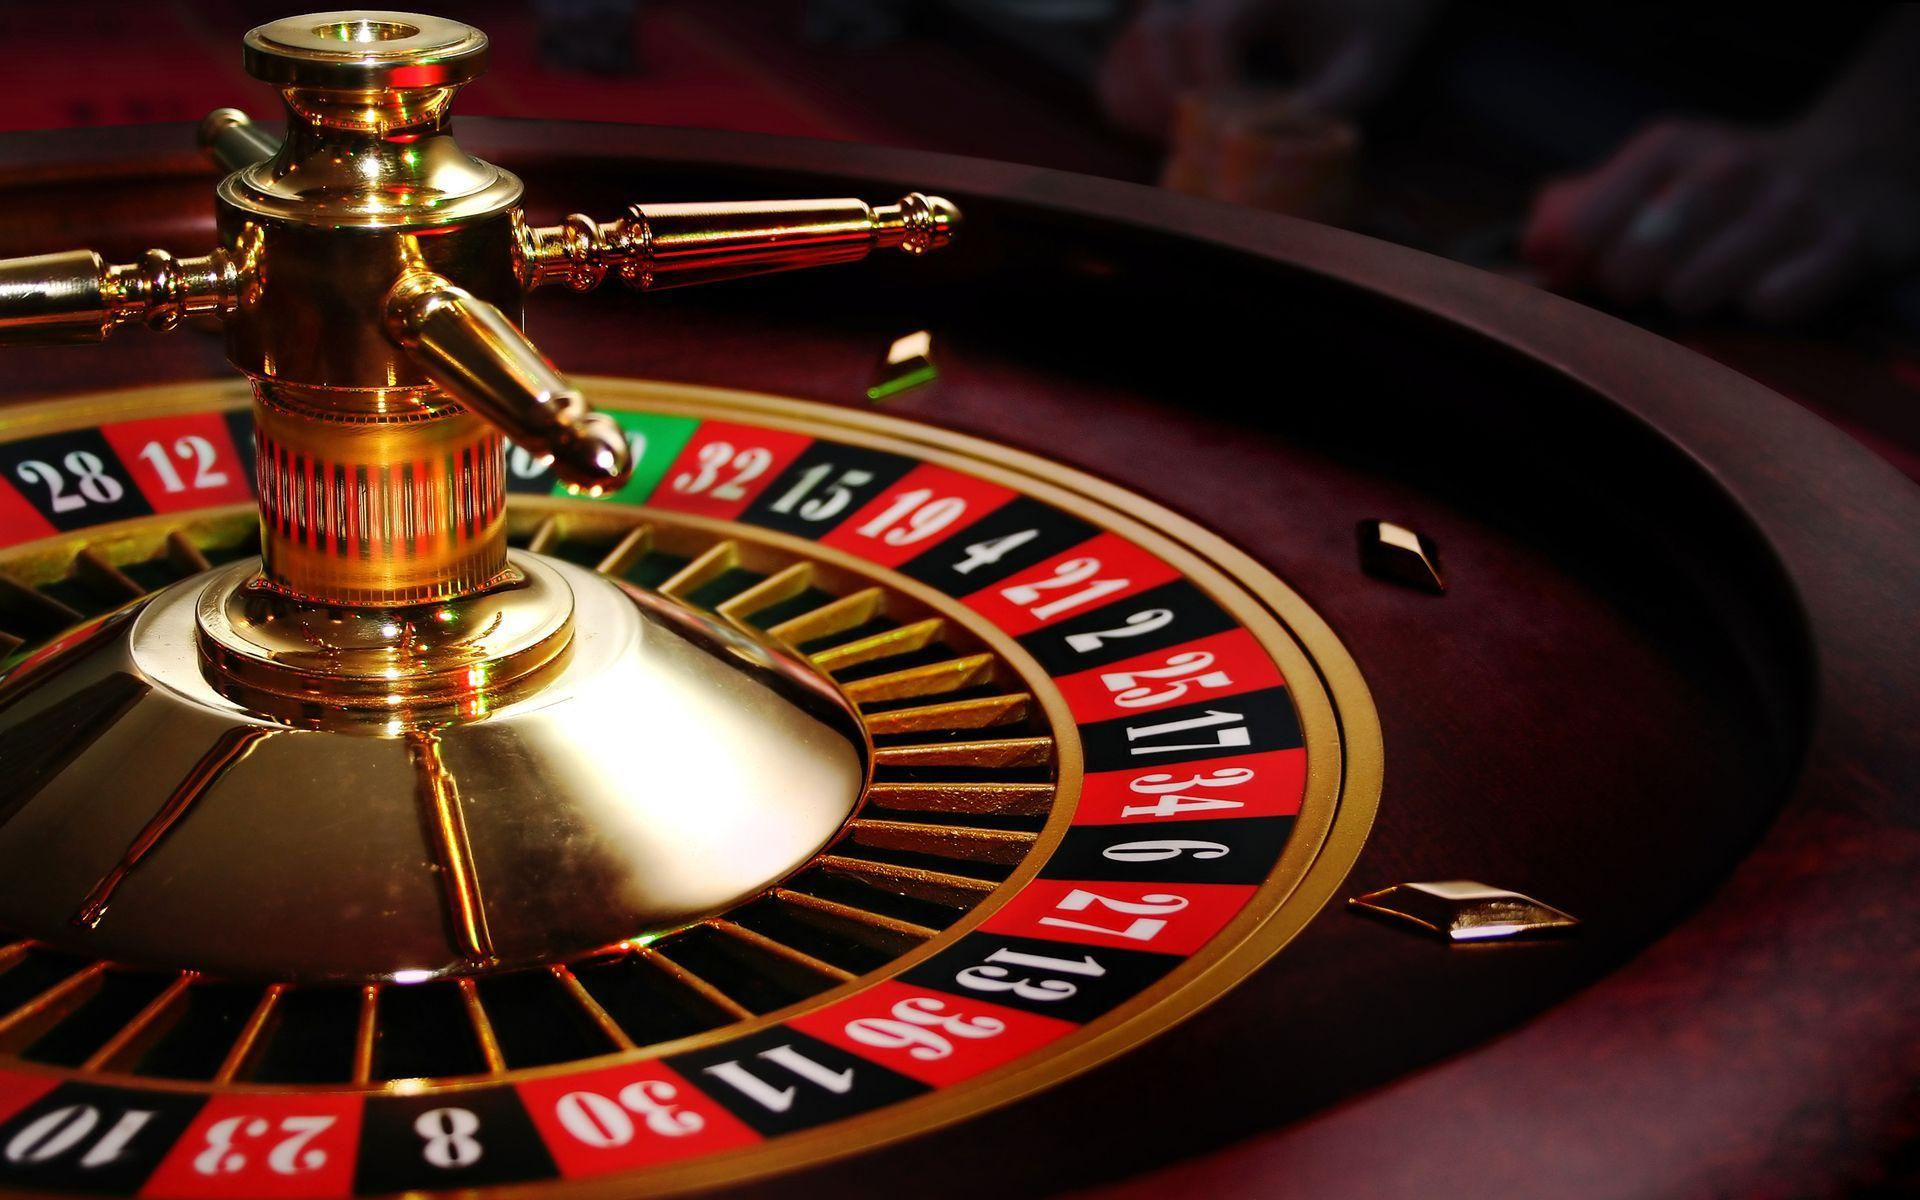 Sports Gambling Sites – Gamble On Sports Legally In 2020